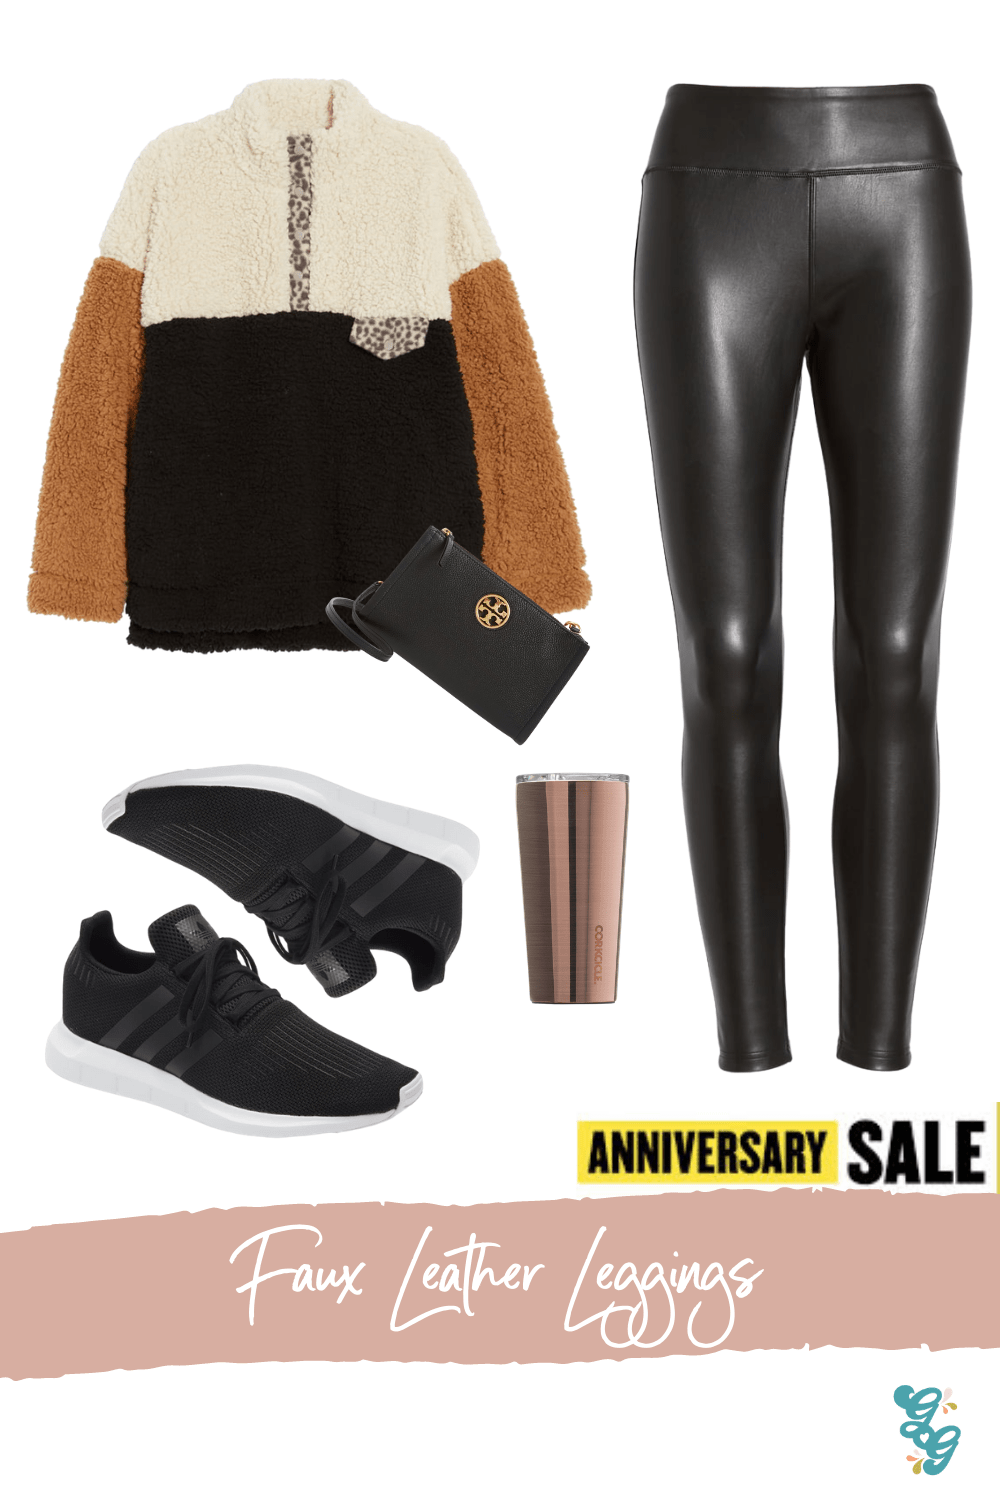 Everyday Athleisure NSALE | NSALE 2020 | The Glitter Gospel , Wubby Colorblock Fleece Pullover THREAD & SUPPLY, Nordstrom BP Faux Leather Leggings, Adidas Swift Run Sneakers, Tory Burch Carson Zip Top Crossbody Bag, Corksicle Tumbler